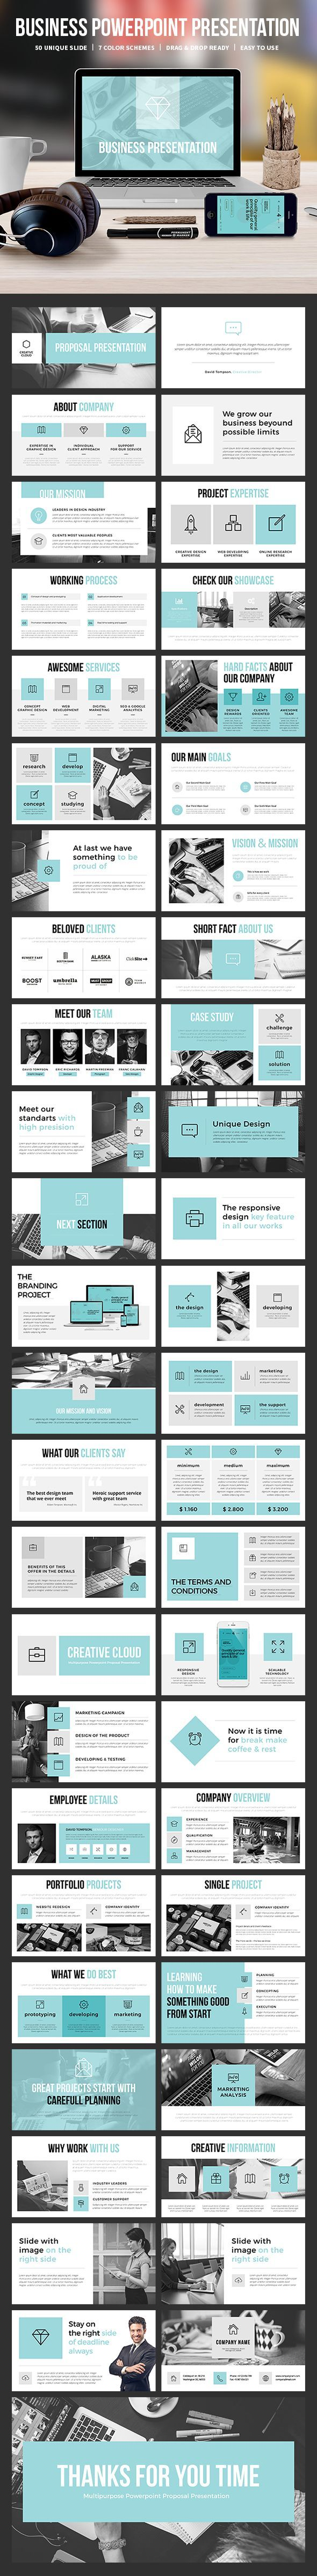 Business powerpoint template business powerpoint templates business powerpoint template business powerpoint templates download here https toneelgroepblik Image collections